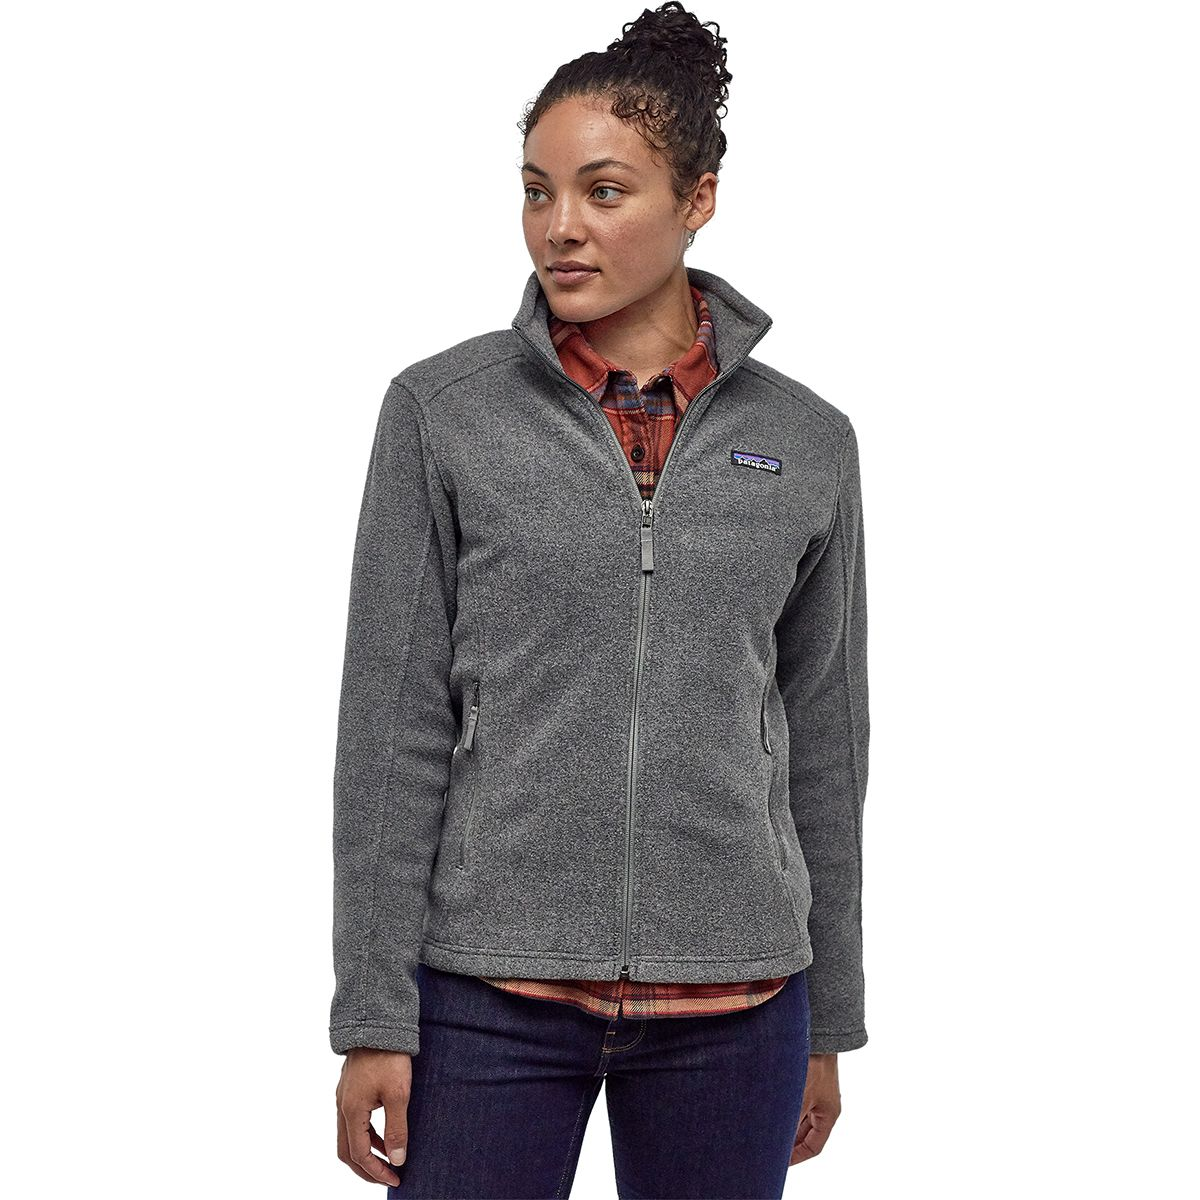 Patagonia Synchilla Jacket